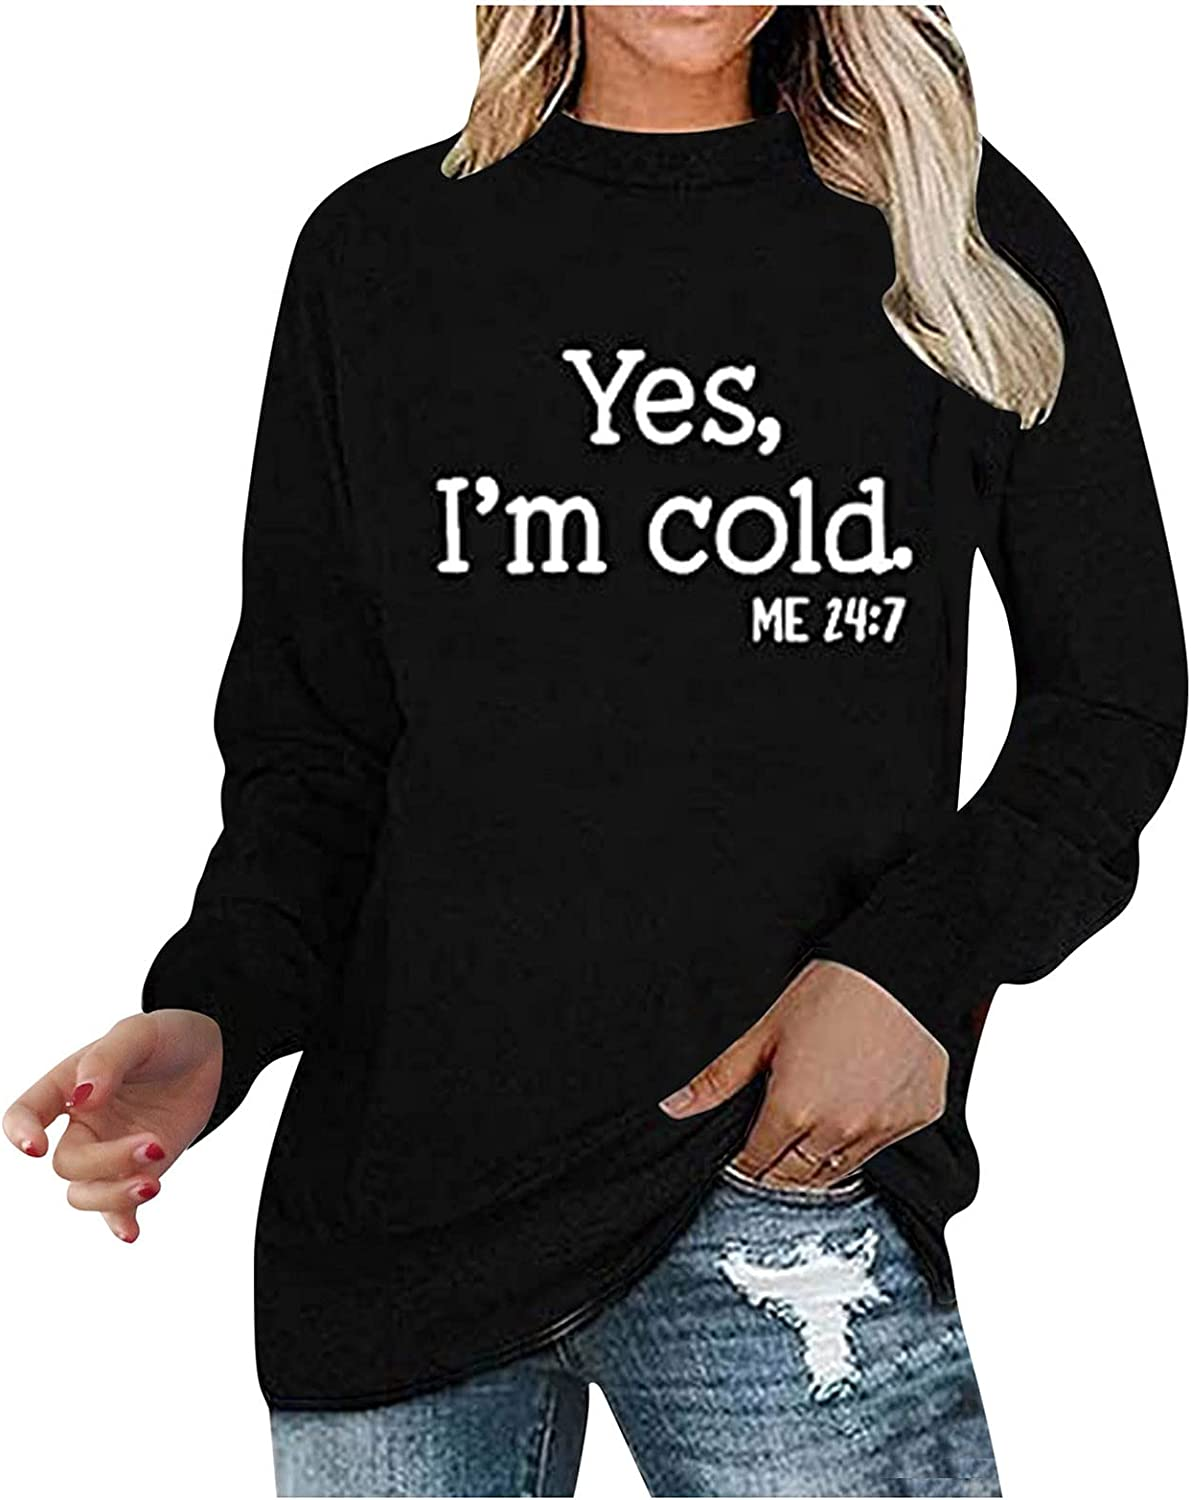 Yes I'm Cold Graphic Tee Long Sleeve Casual Cotton T-Shirt Funny Gift Blouse Tops for Women